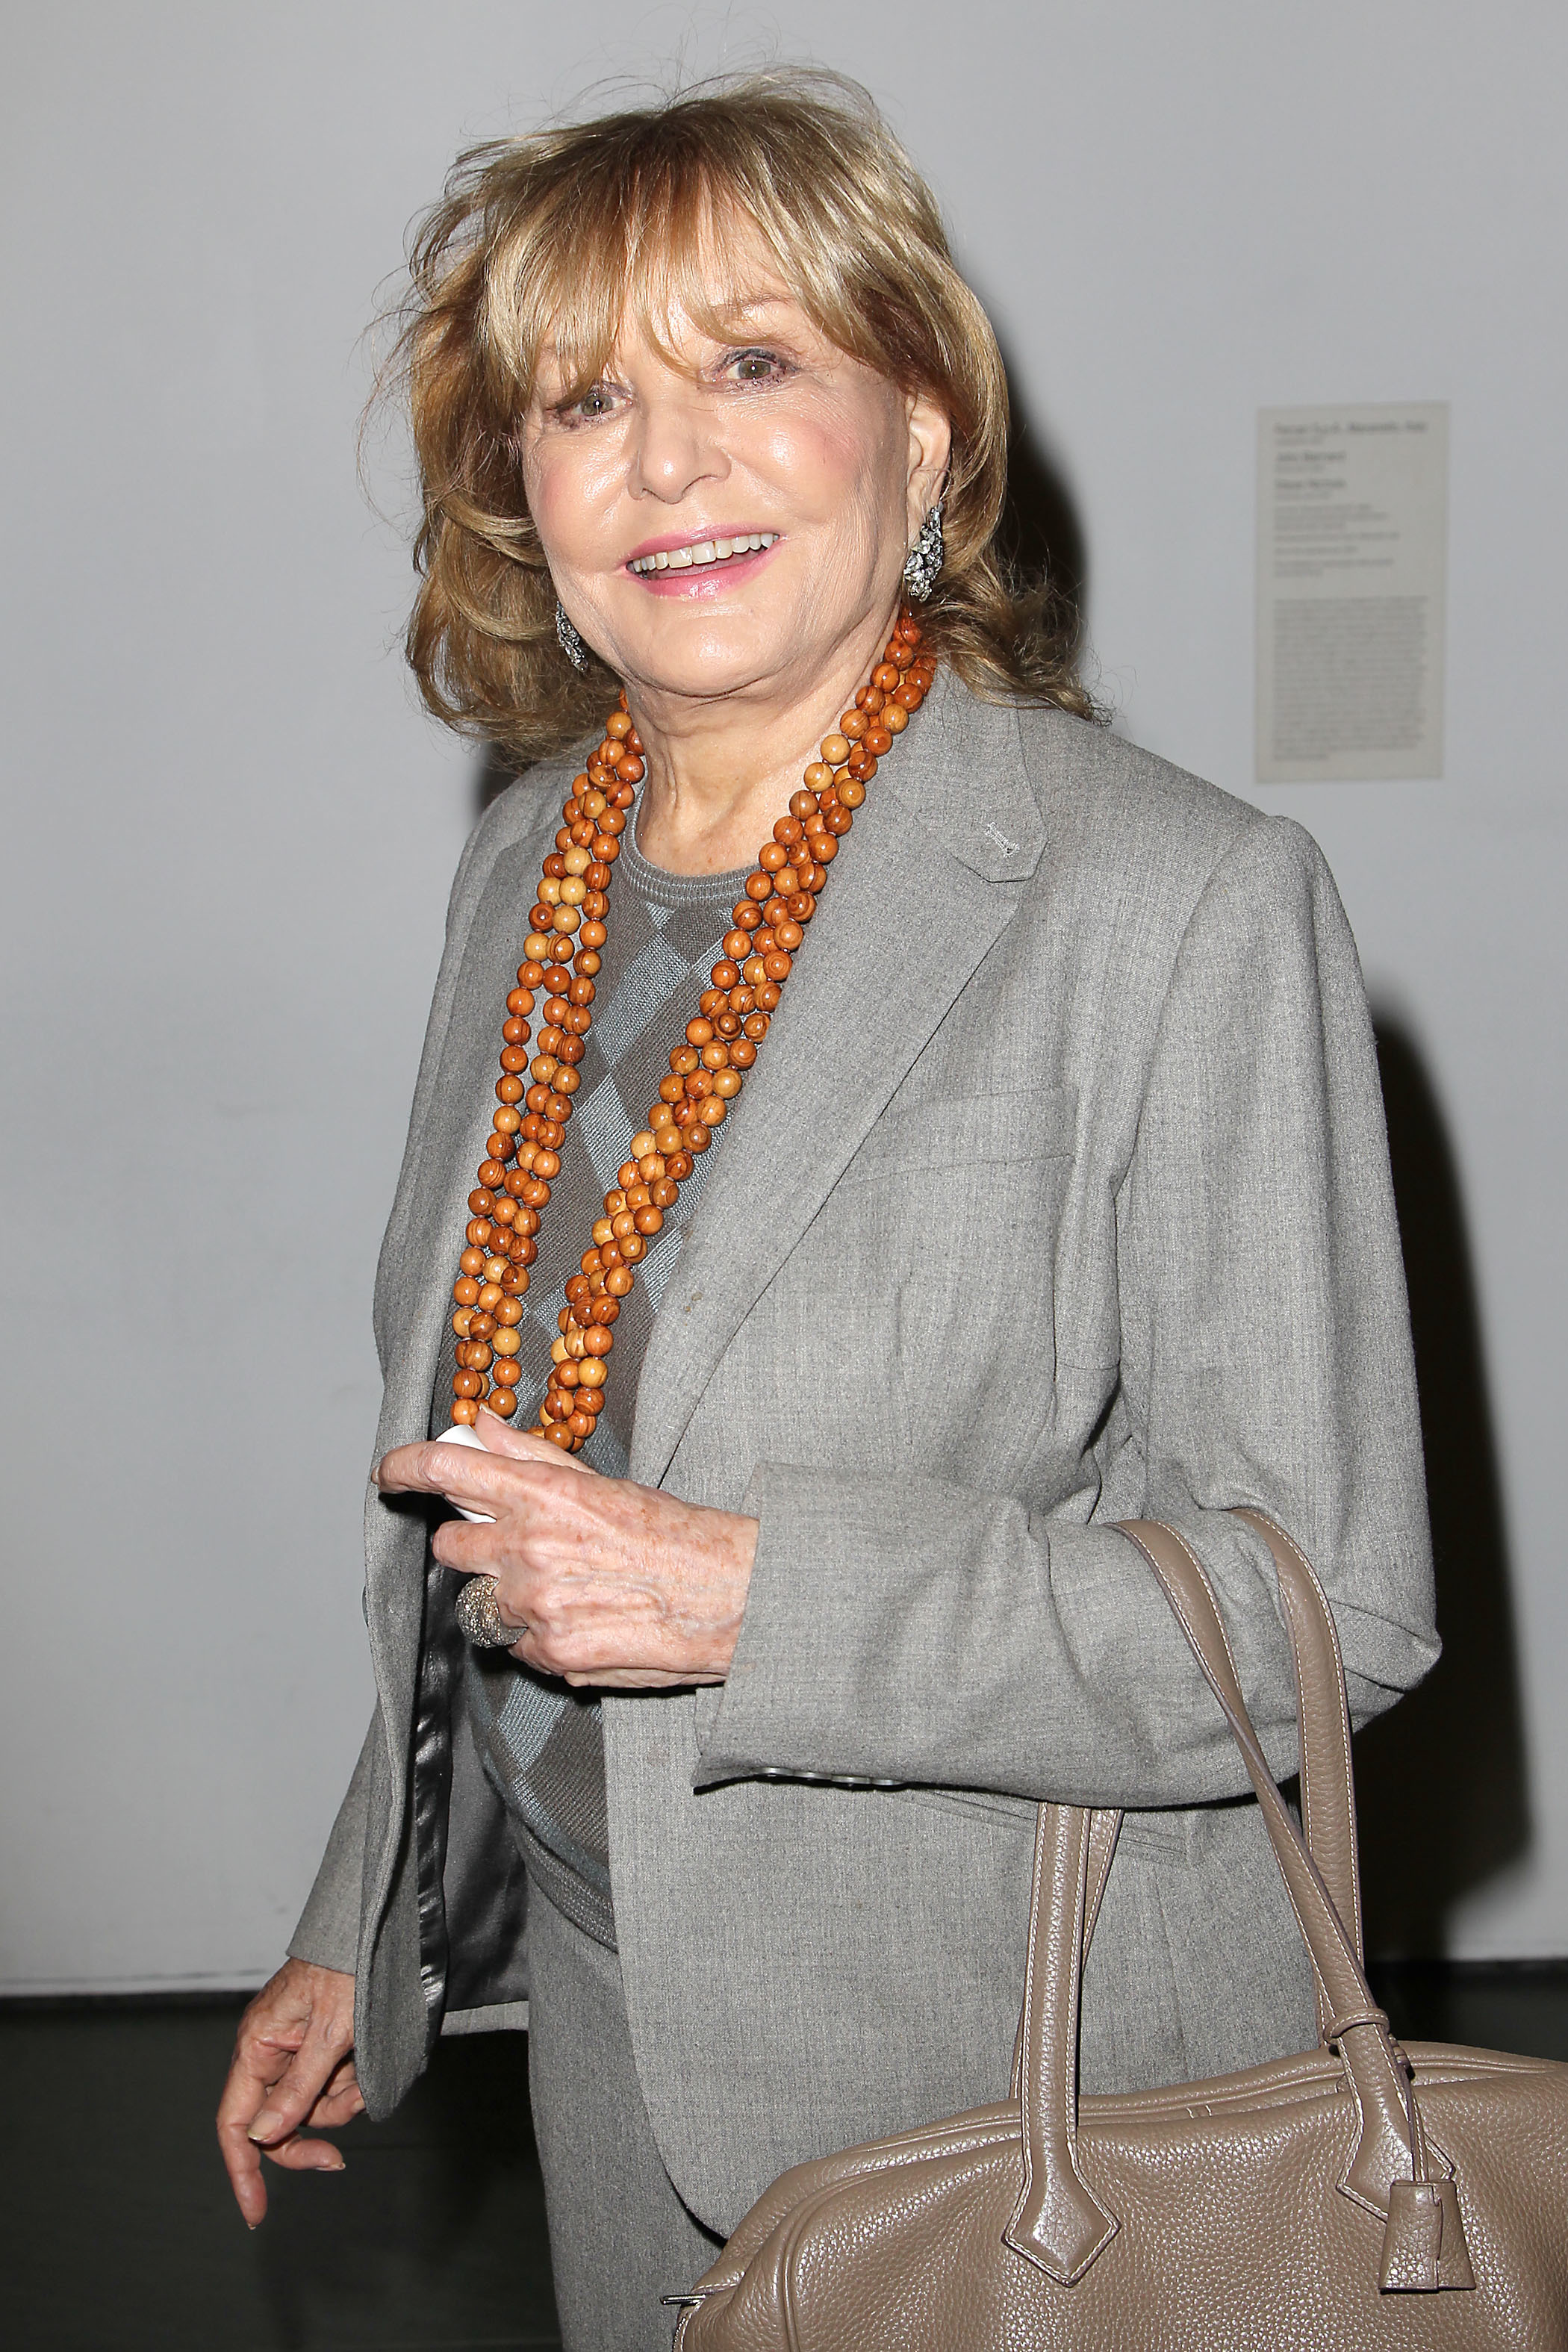 Barbara Walters attends the 'Whiskey Tango Foxtrot' film screening in New York on Feb. 21, 2016.